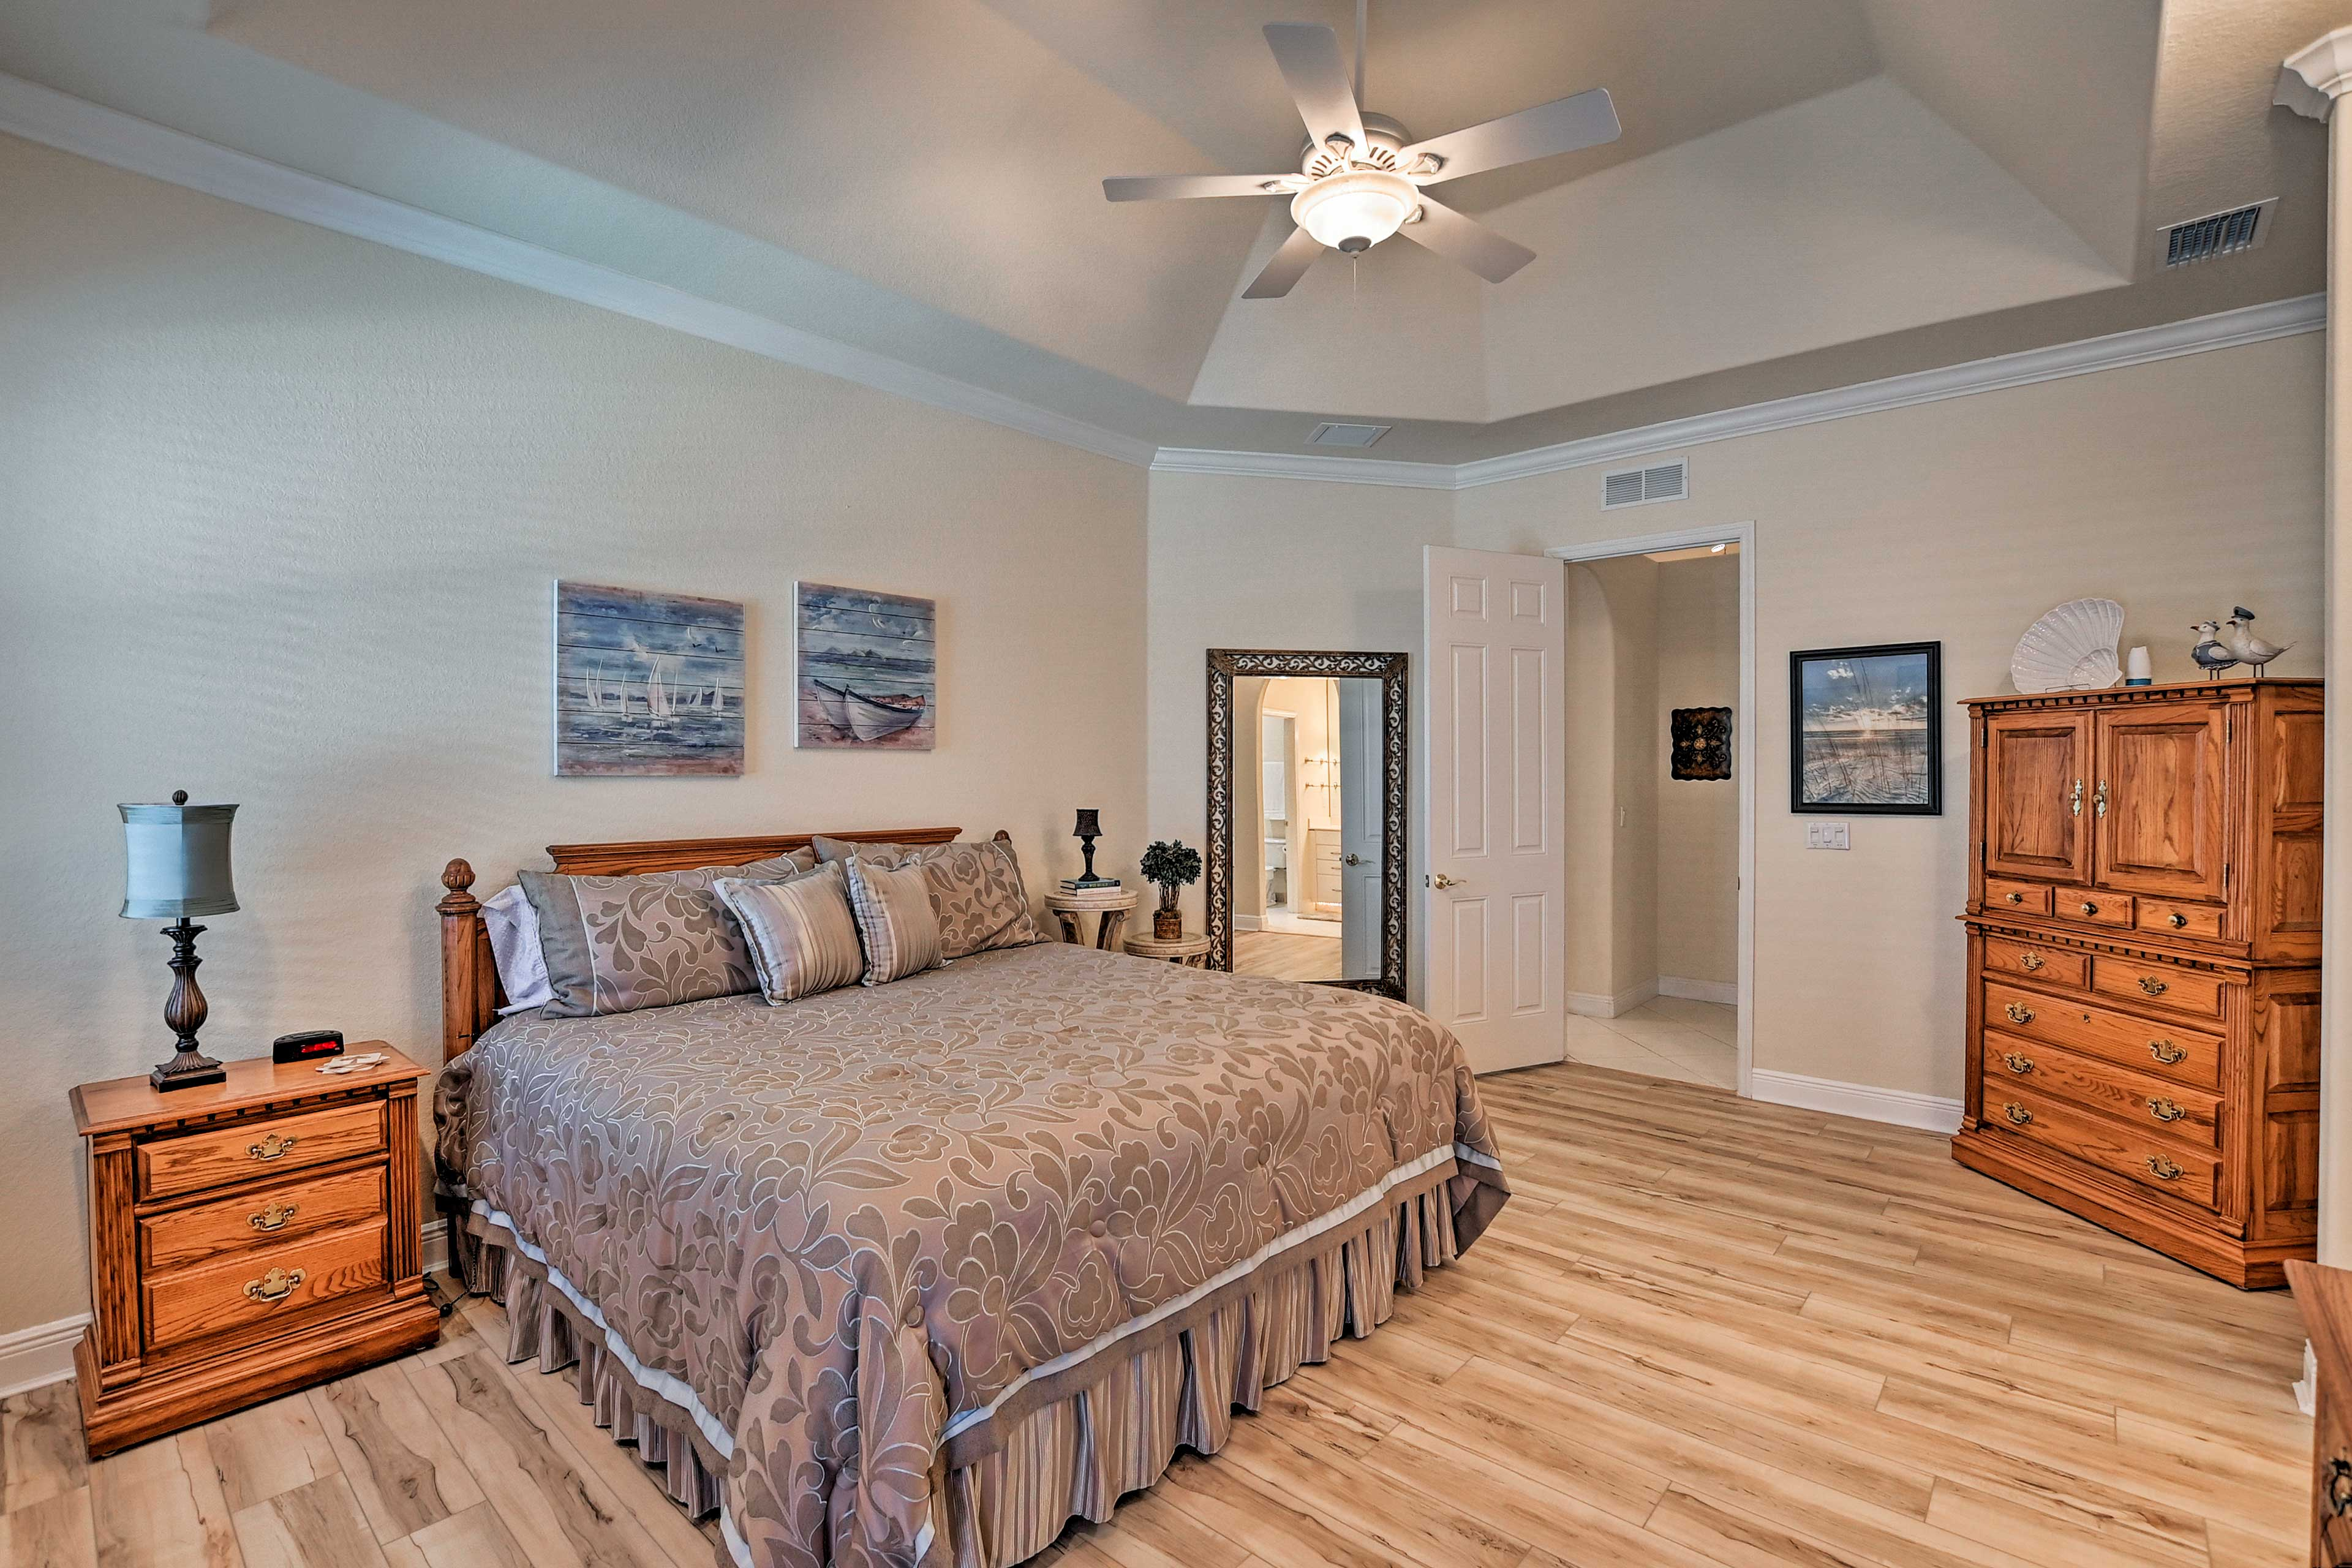 Rest your head on the Beautyrest king bed in the master bedroom.